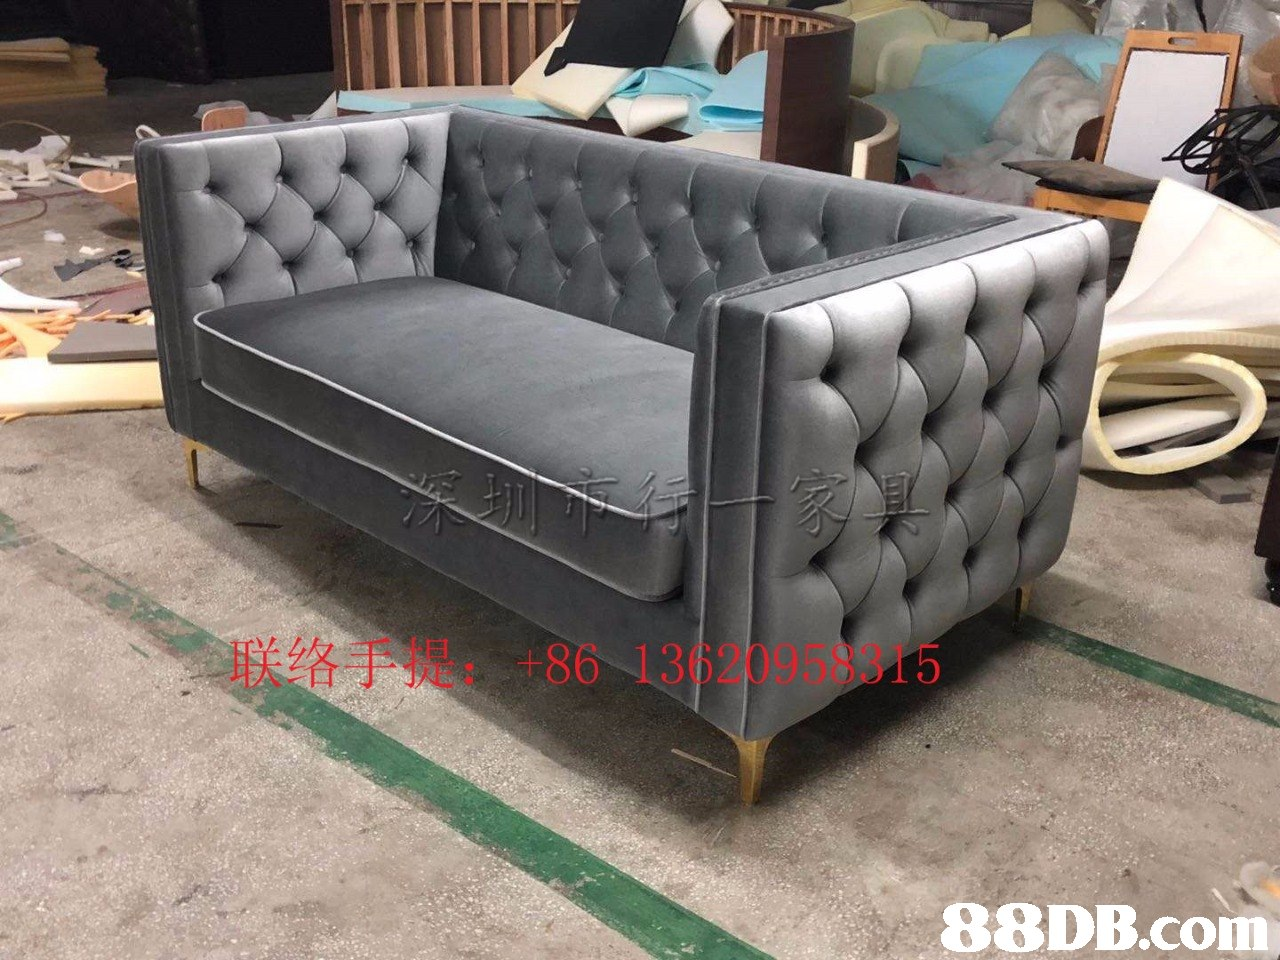 86 1362091315,Furniture,Couch,Sofa bed,Chair,Loveseat